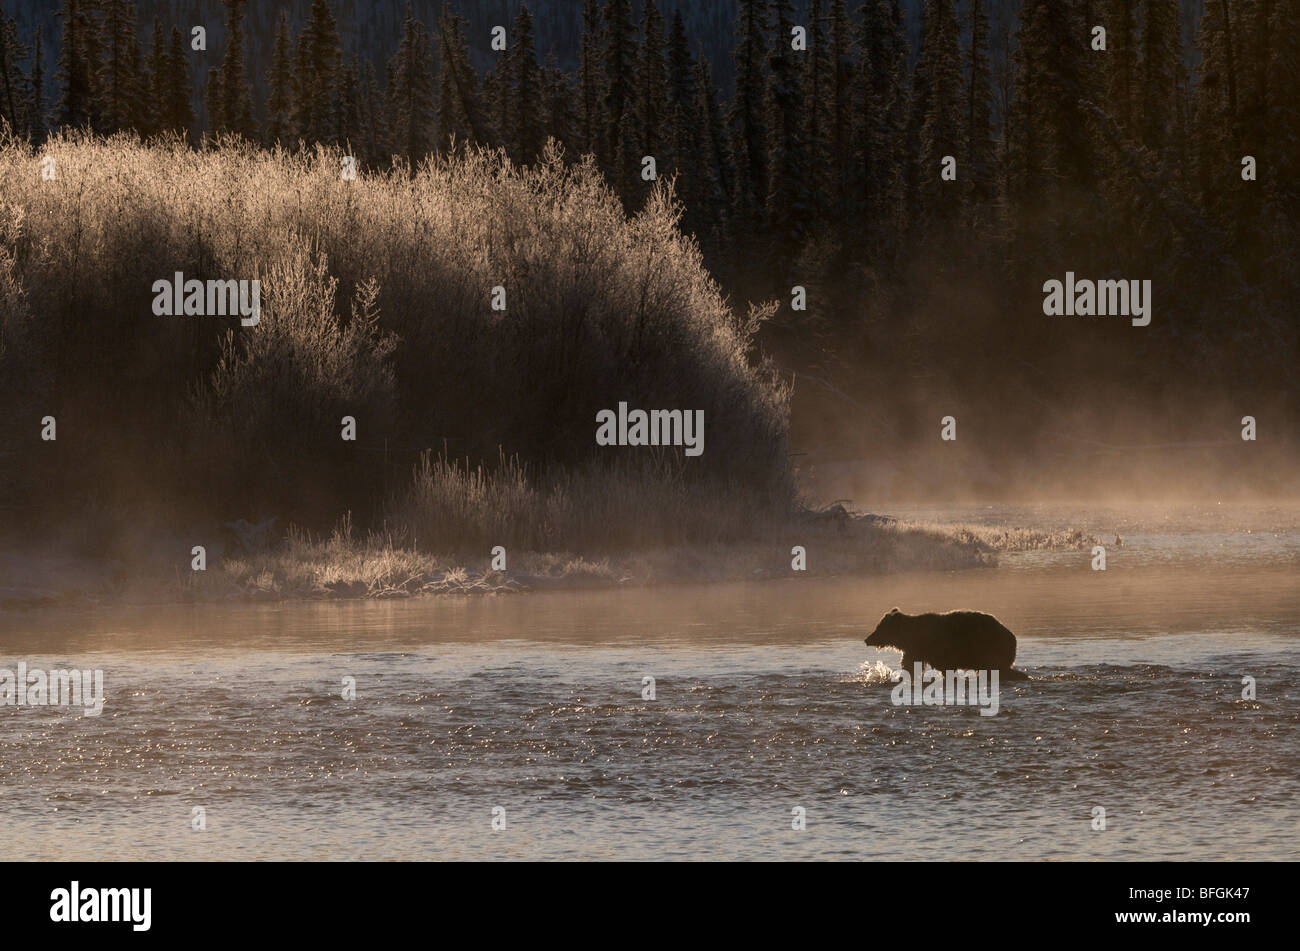 Grizzly Bear (Ursus arctos) crossing Fishing Branch River, Ni'iinlii Njik Ecological Reserve, Yukon Territory, - Stock Image